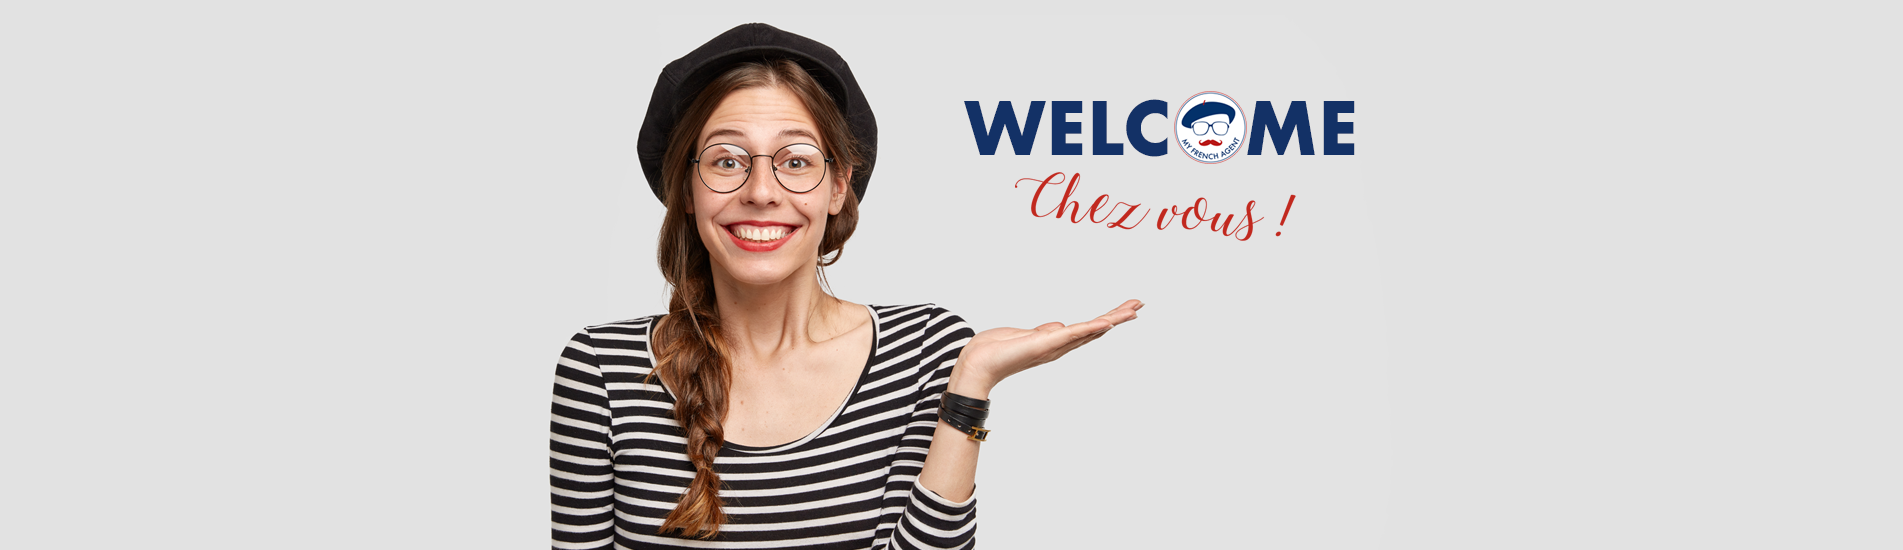 Welcome chez vous